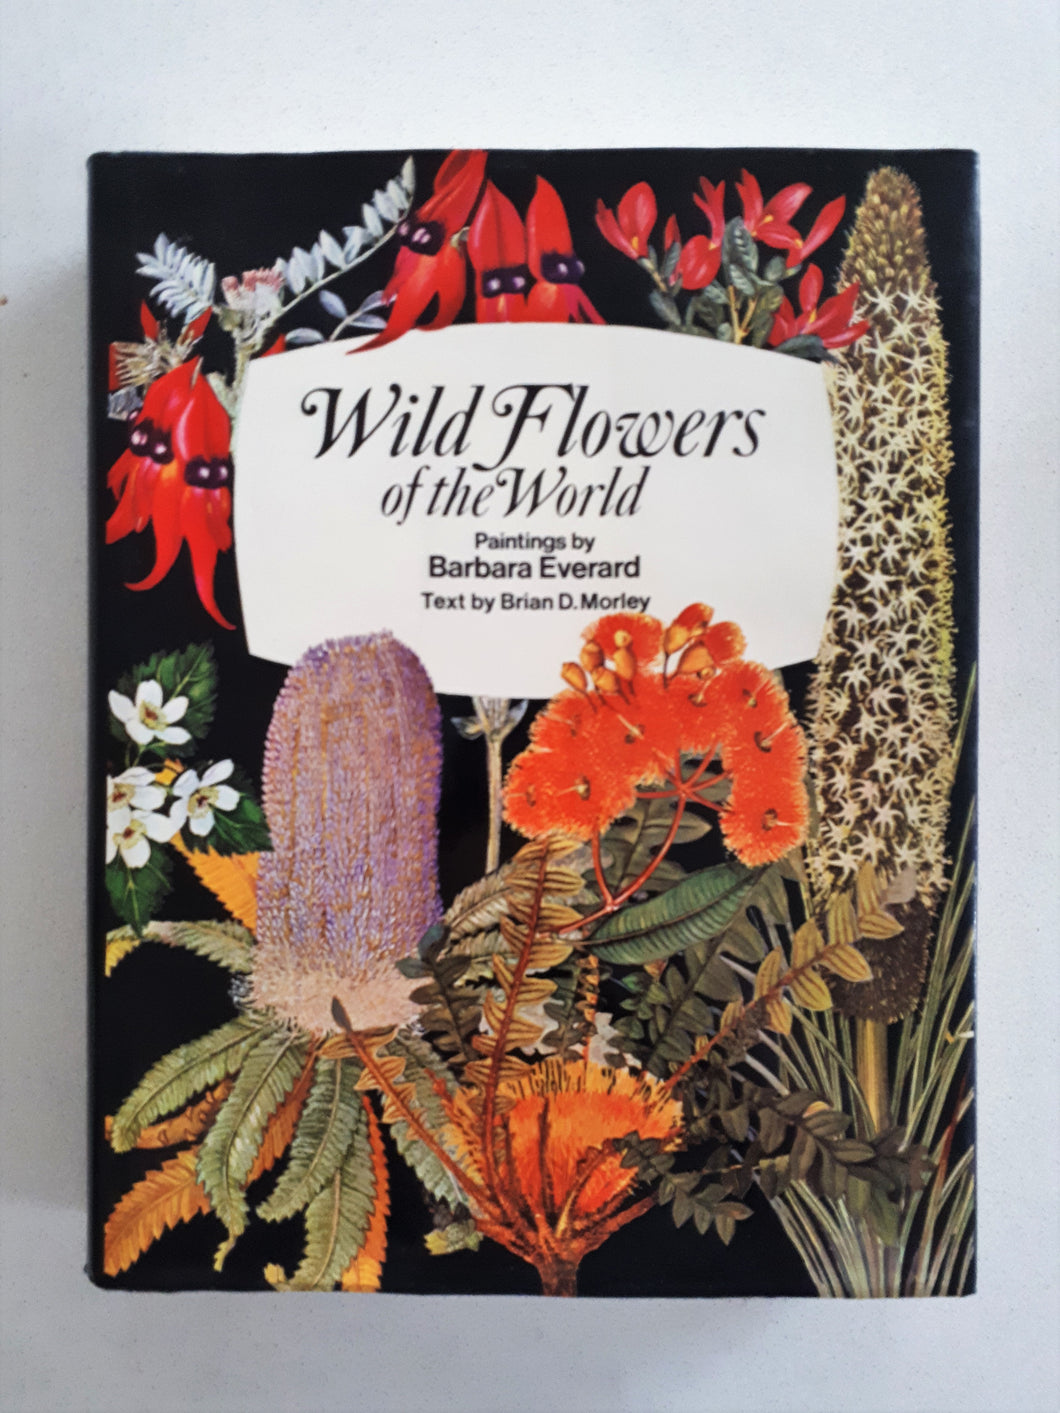 Wild Flowers of the World: Paintings by Barbara Everard, Text by Brian D. Morley